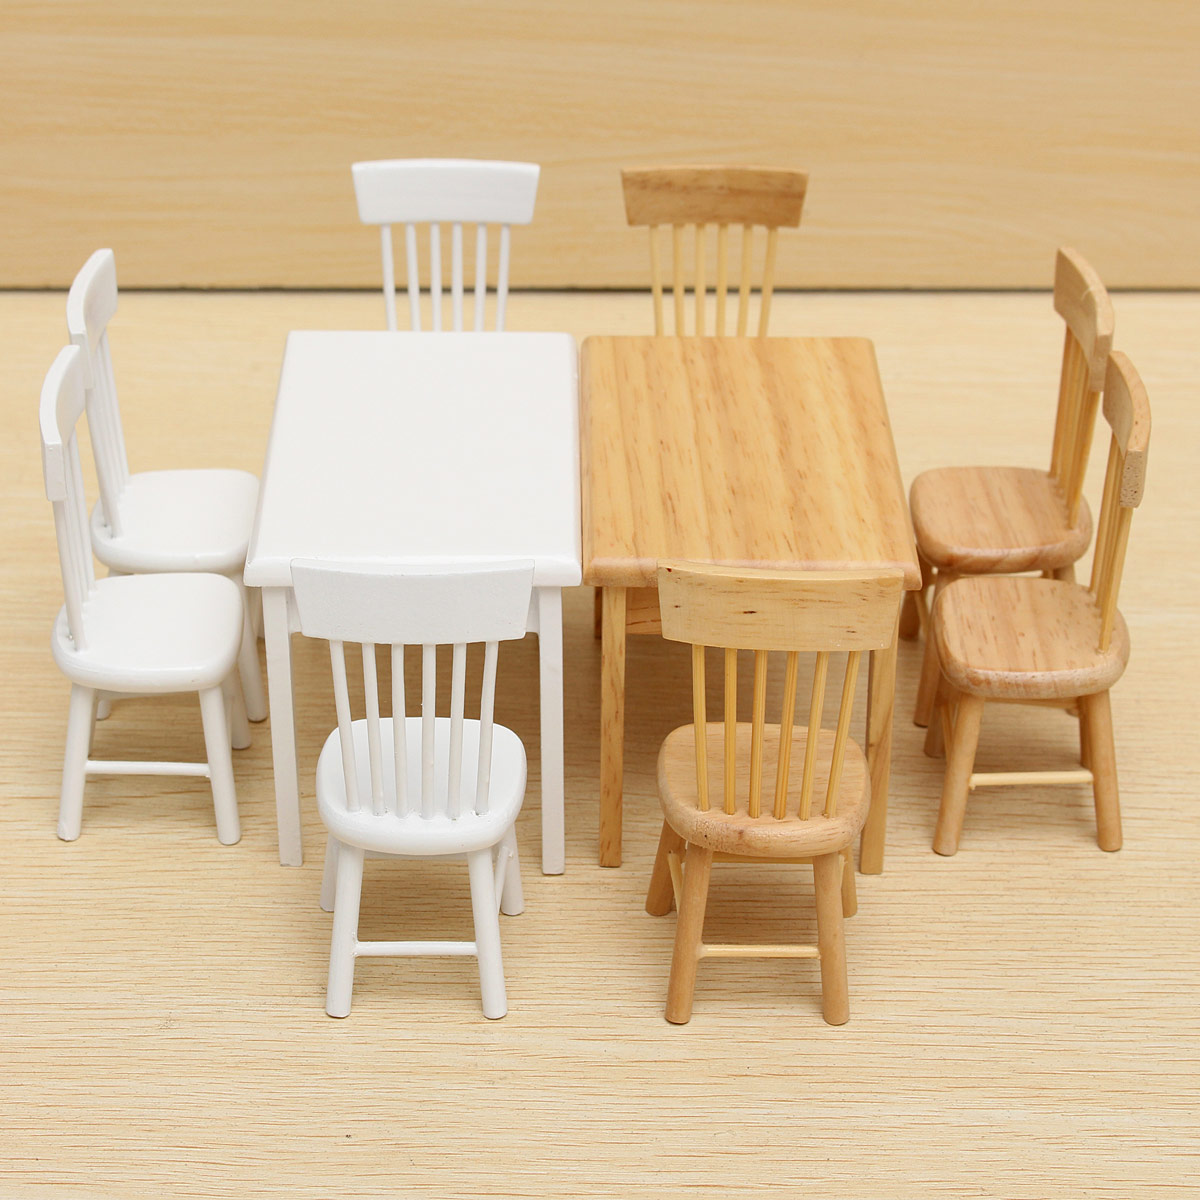 Miniature Chairs 1 12 Dollhouse Miniature Furniture Wooden Dining Room